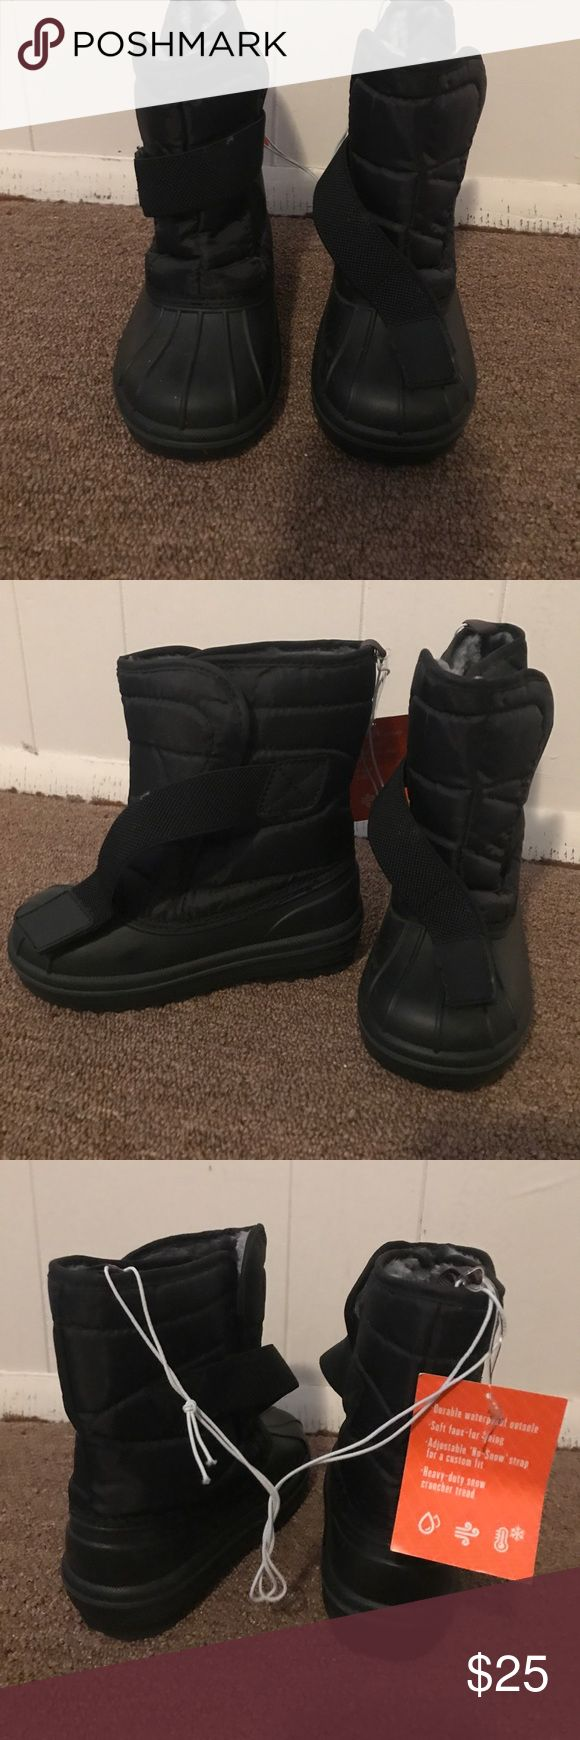 Boys snow boots brand new Brand new snow boots in black from children's place size11 Children's Place Shoes Rain & Snow Boots